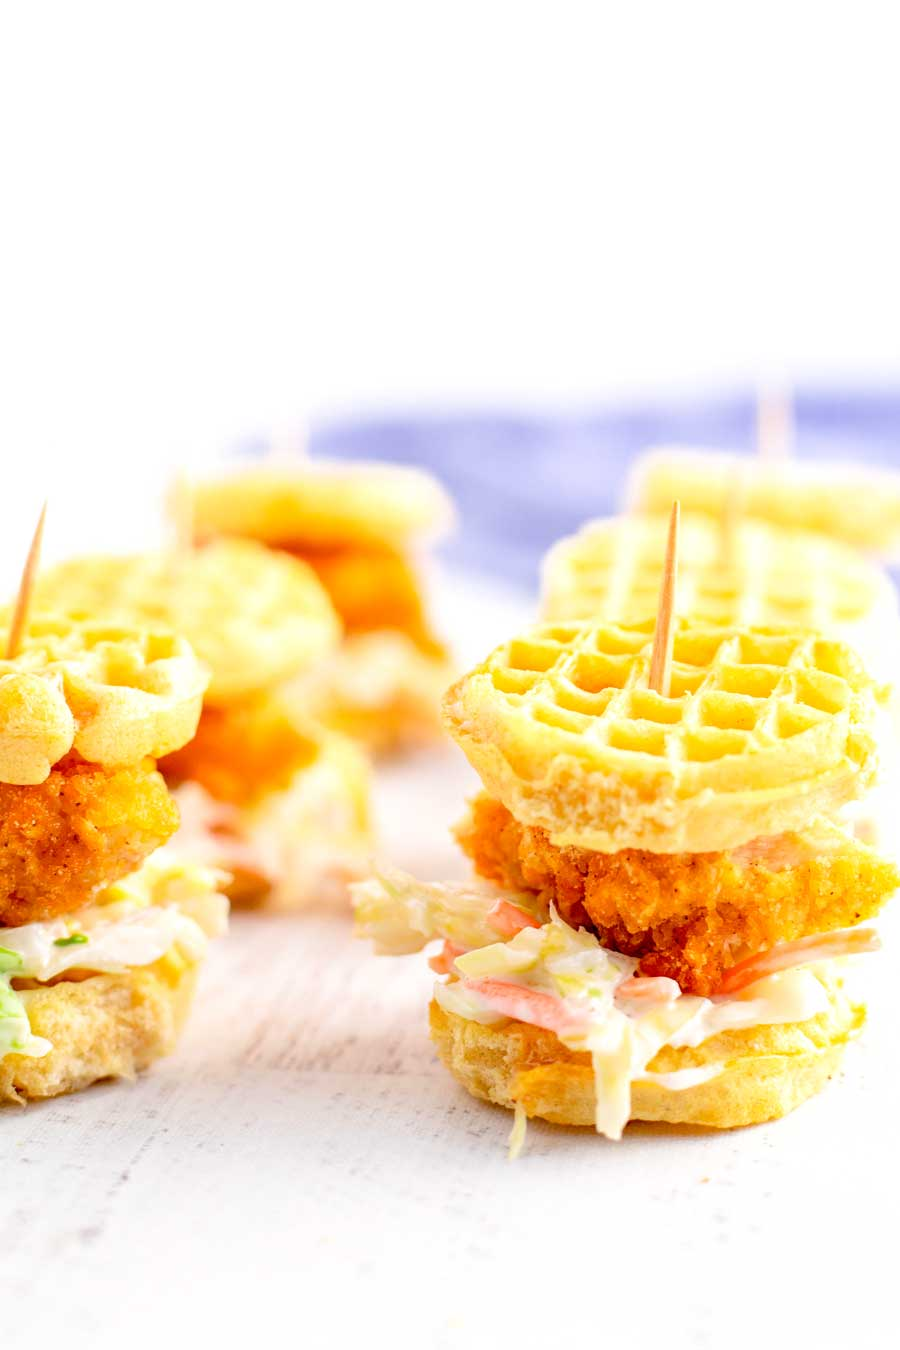 Chicken and Waffle Sliders with Coleslaw